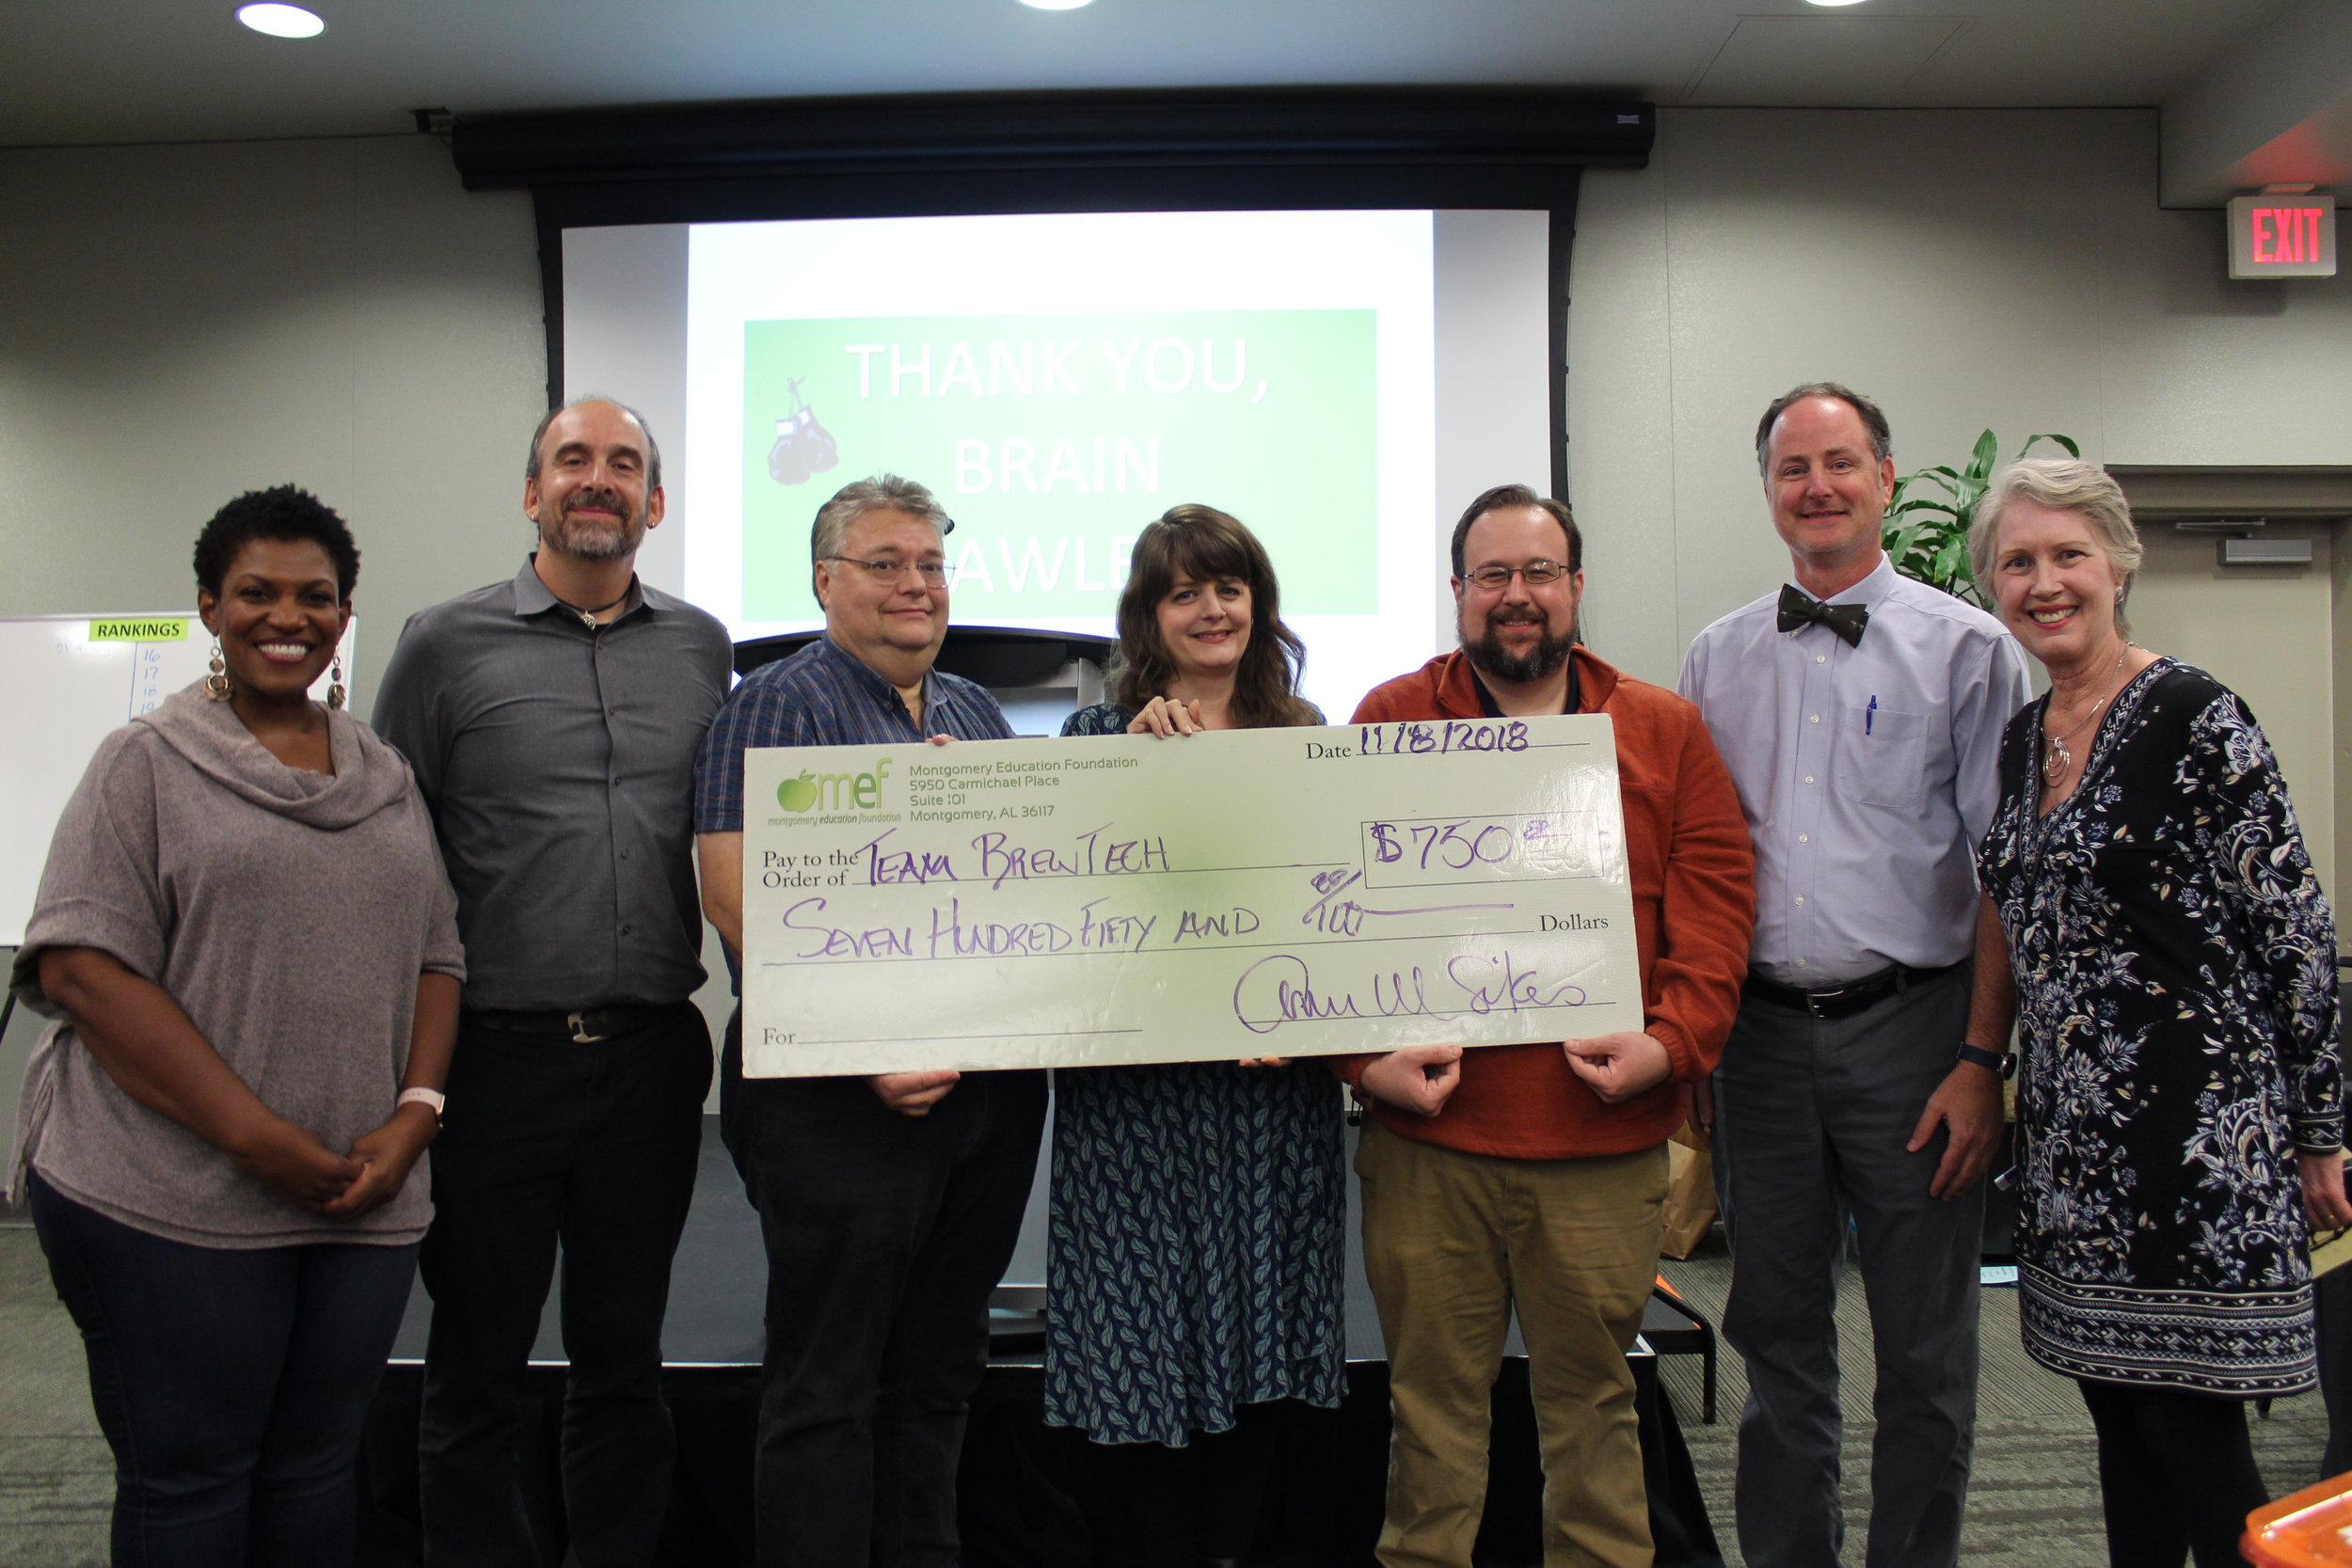 Third Place-  Team Brew Tech, competing on the behalf of Brewbaker Technology Magnet, won $750.